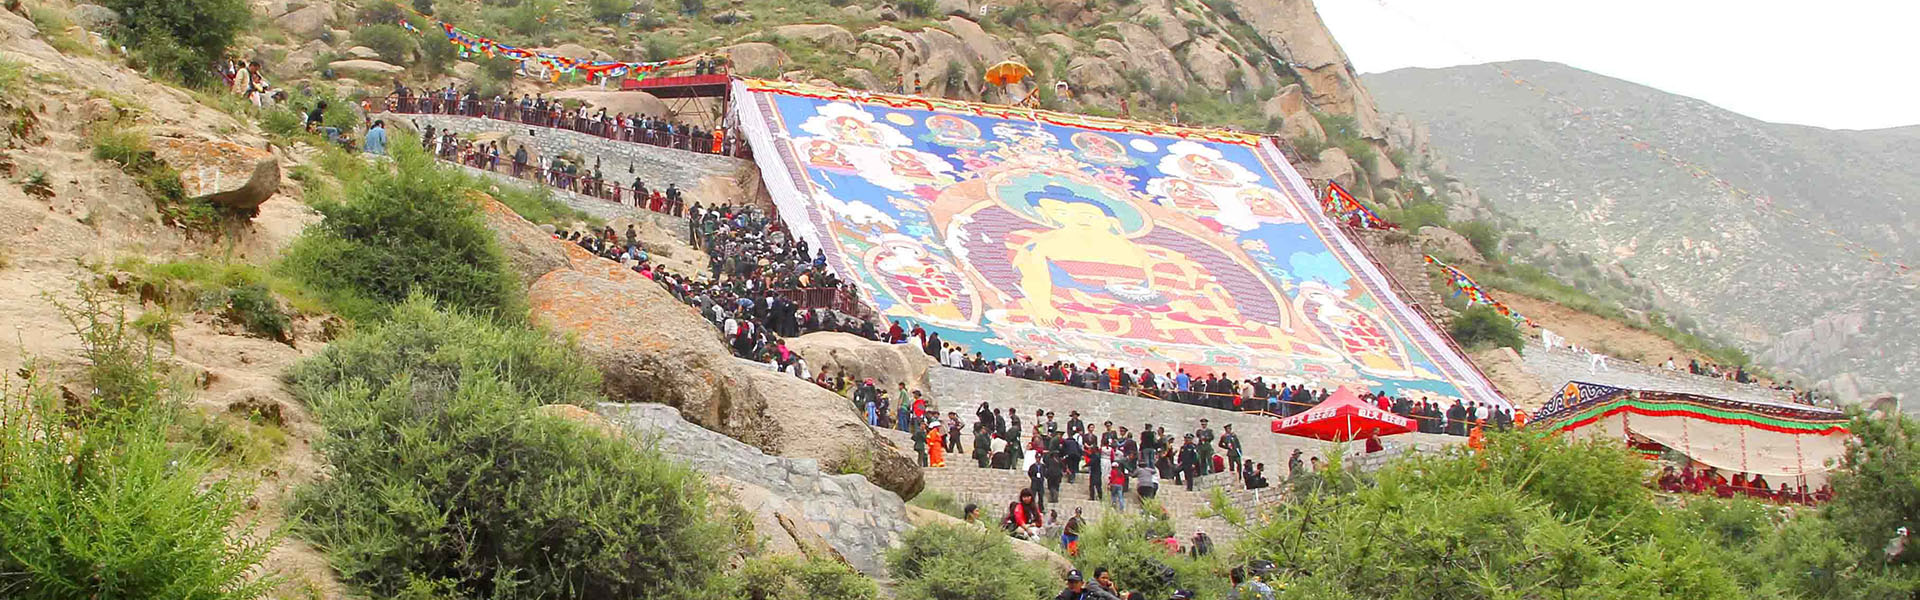 Take a Tibet tour during Tibetan festival time